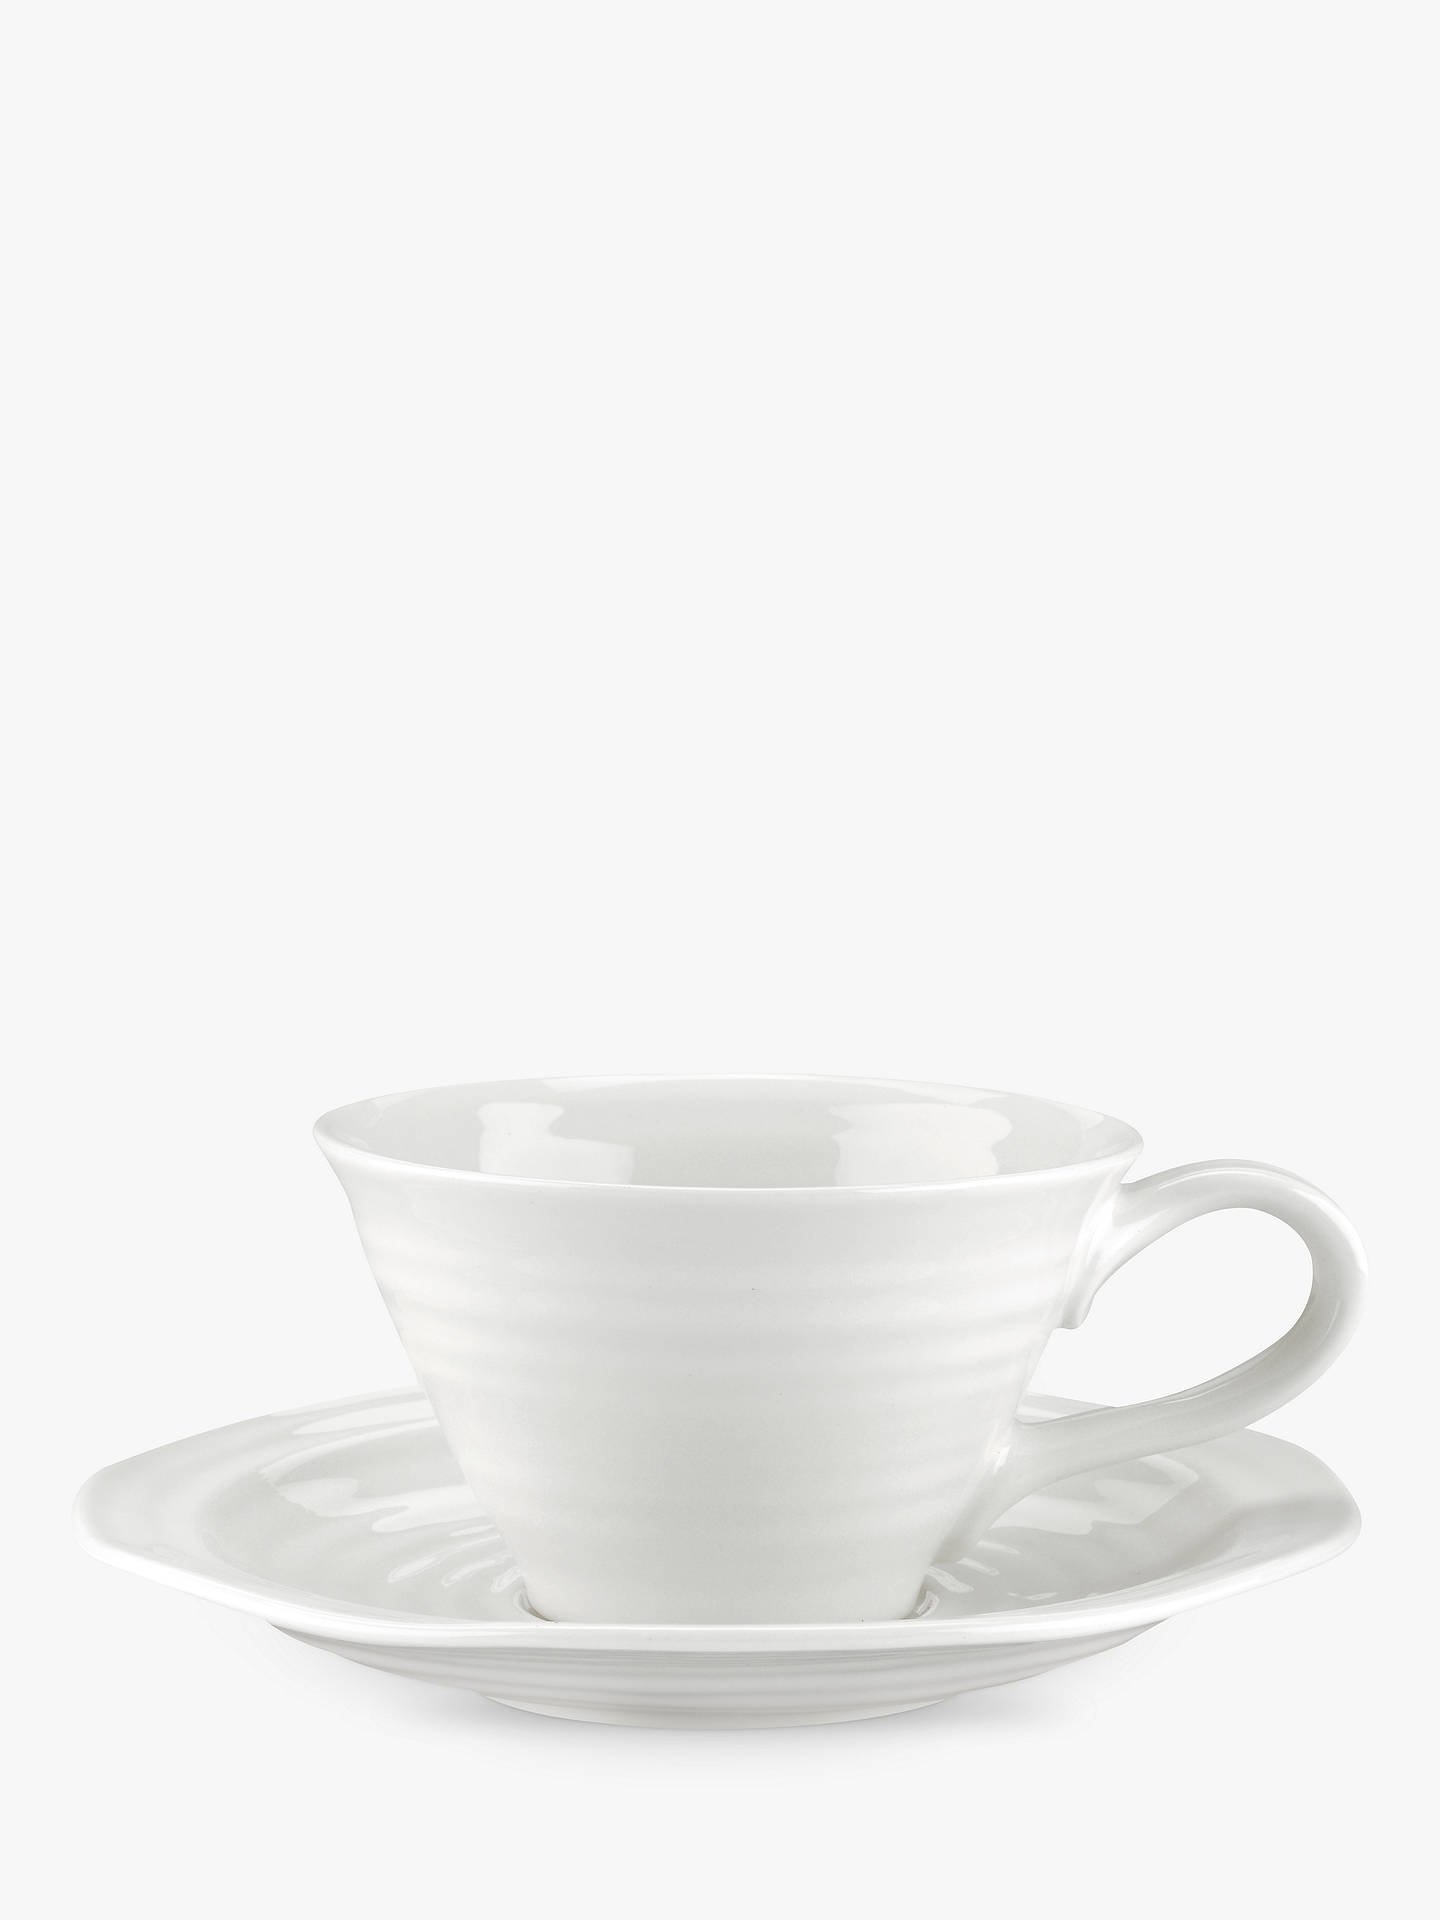 8c0b03ce58 Buy Sophie Conran for Portmeirion Tea Cup and Saucer, White Online at  johnlewis.com ...